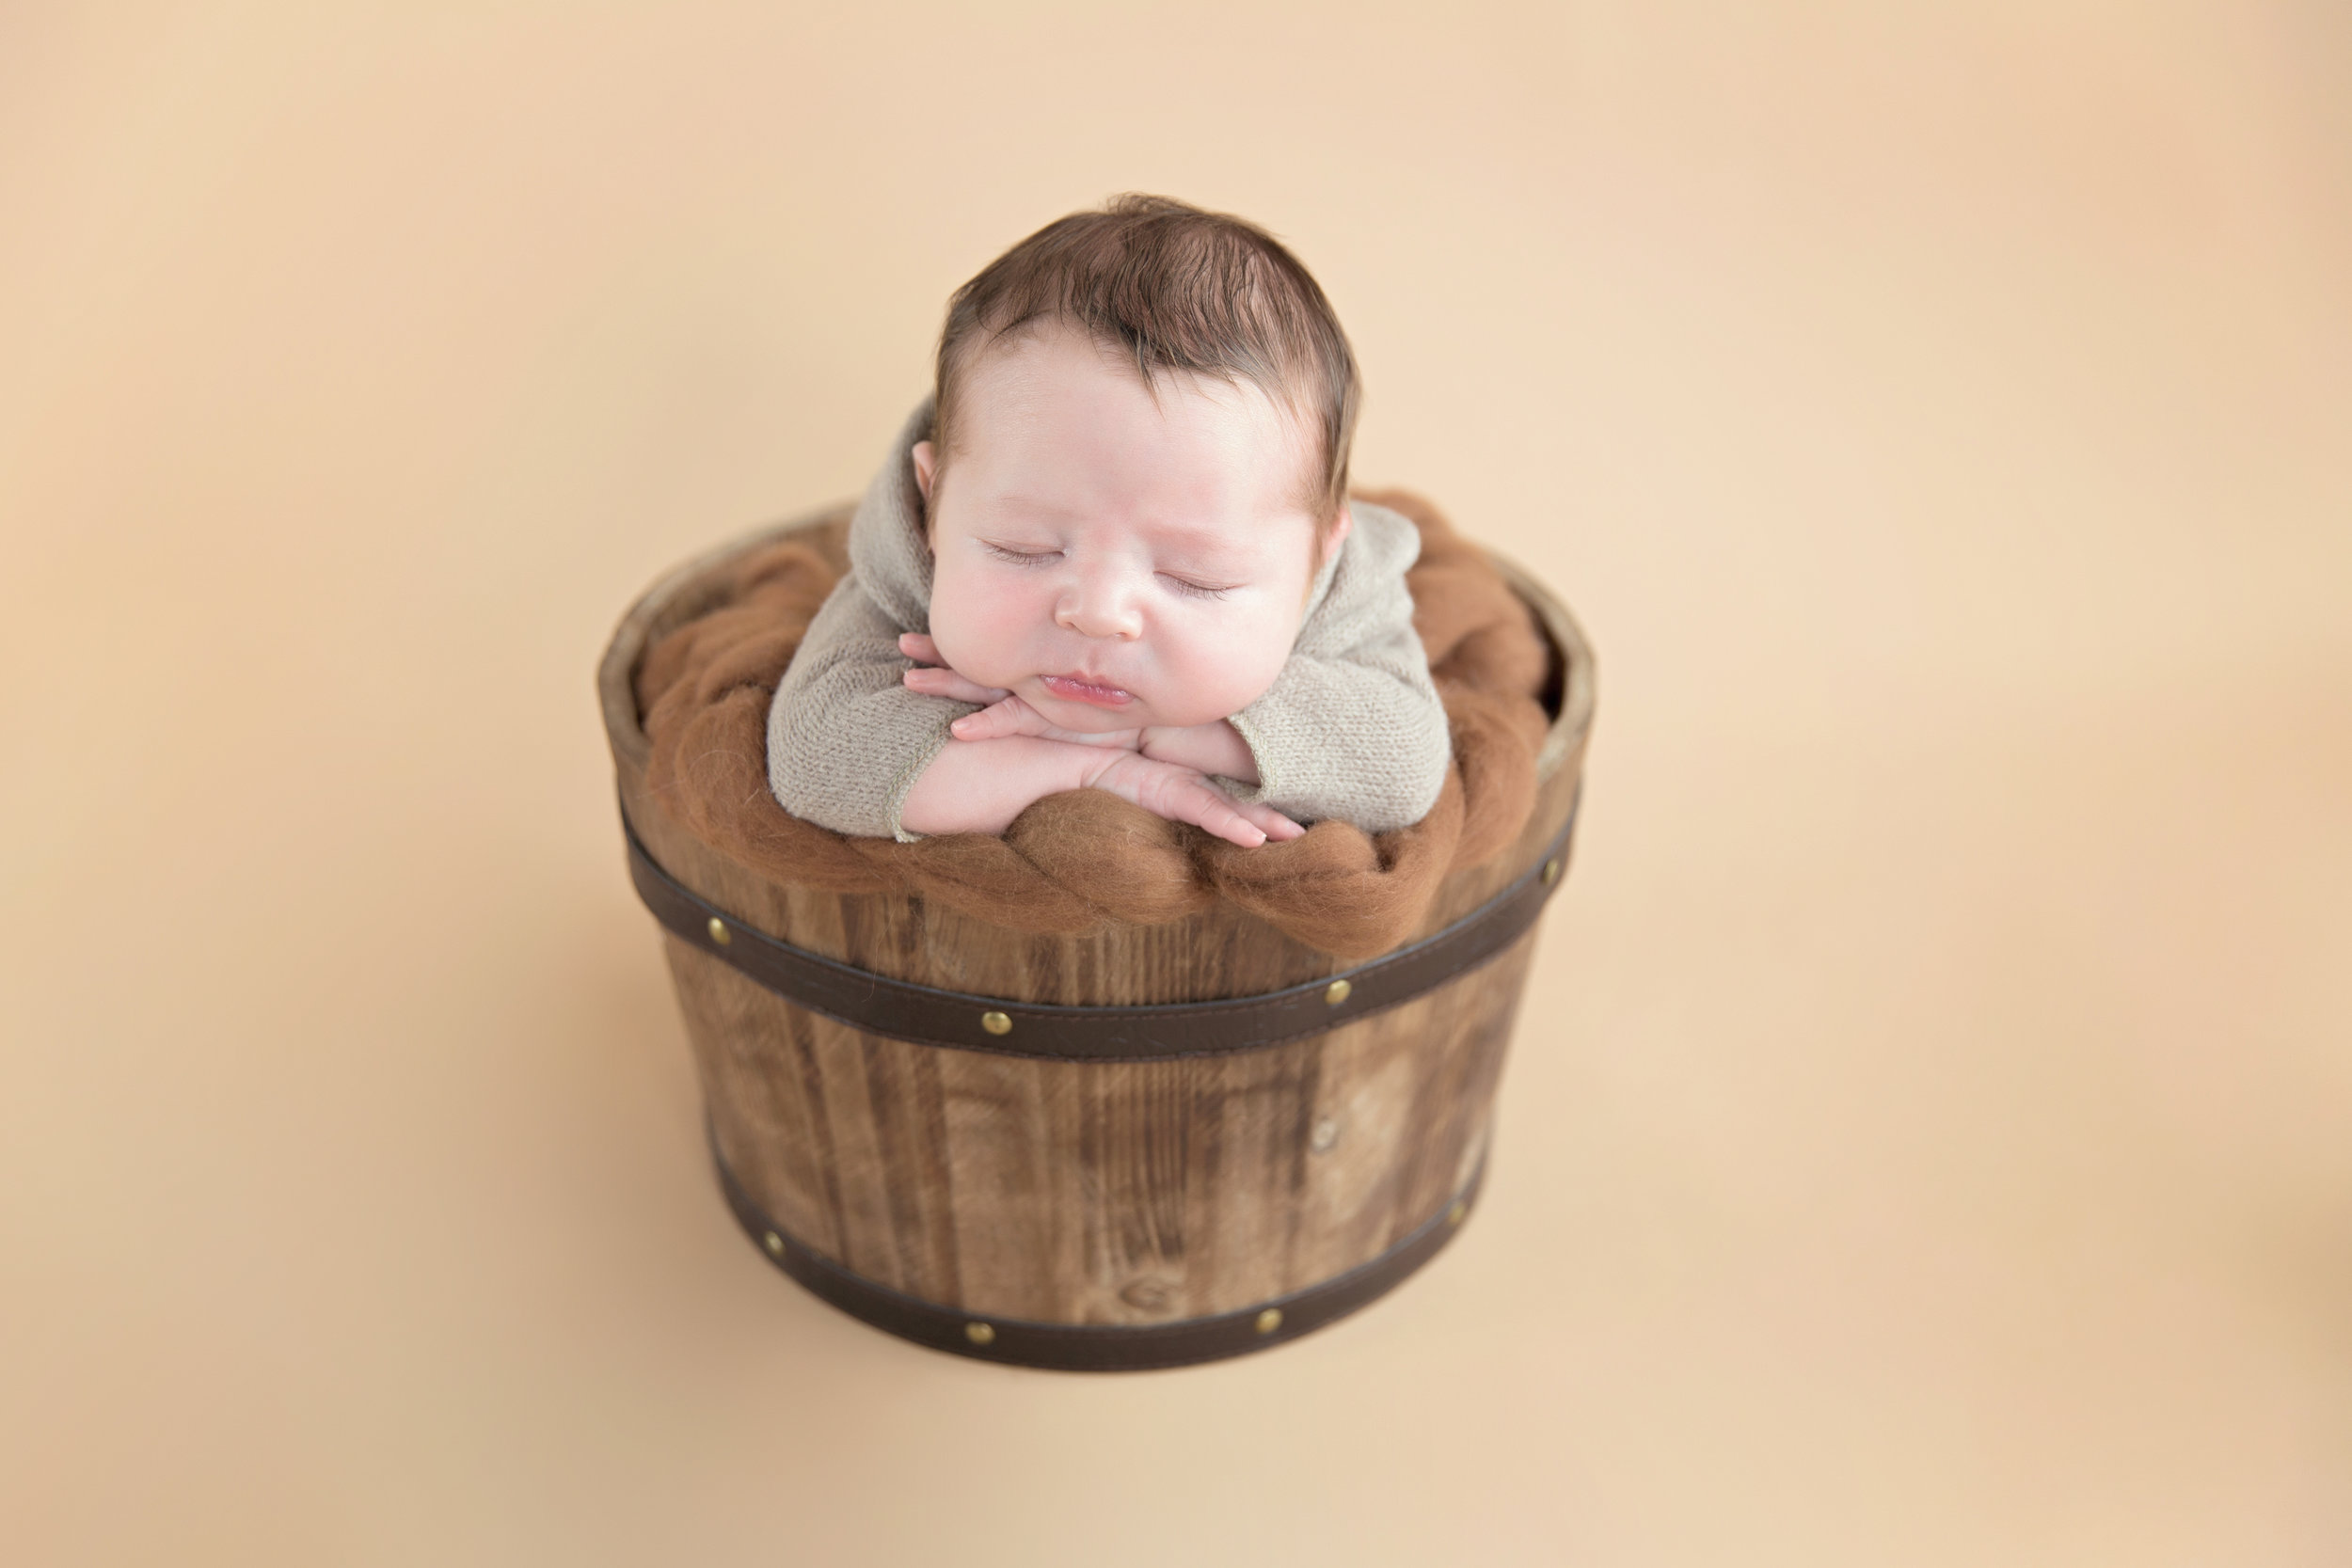 Newborn baby boy in a bucket. Calgary Newborn Photographer. Milashka Photography